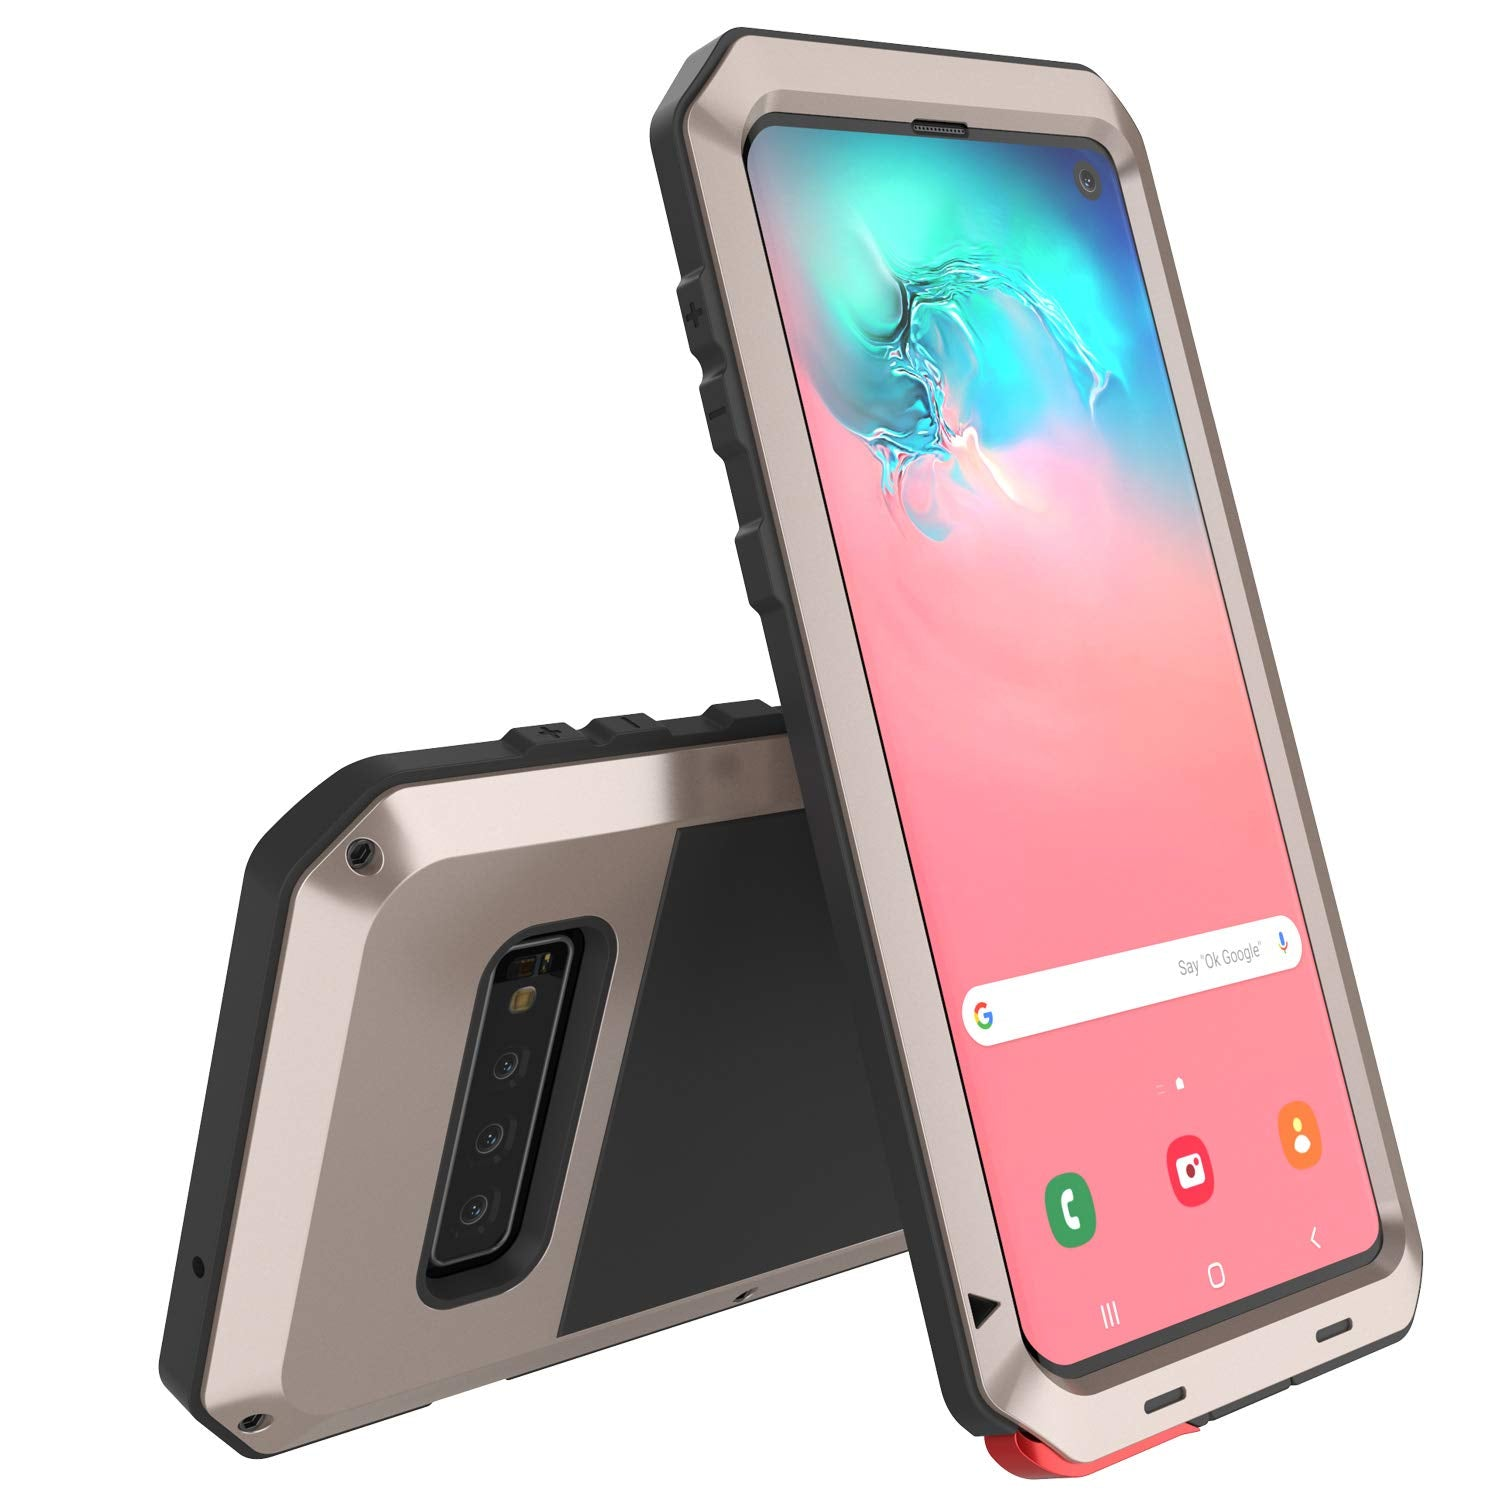 Galaxy S10 Metal Case, Heavy Duty Military Grade Rugged Armor Cover [Gold]